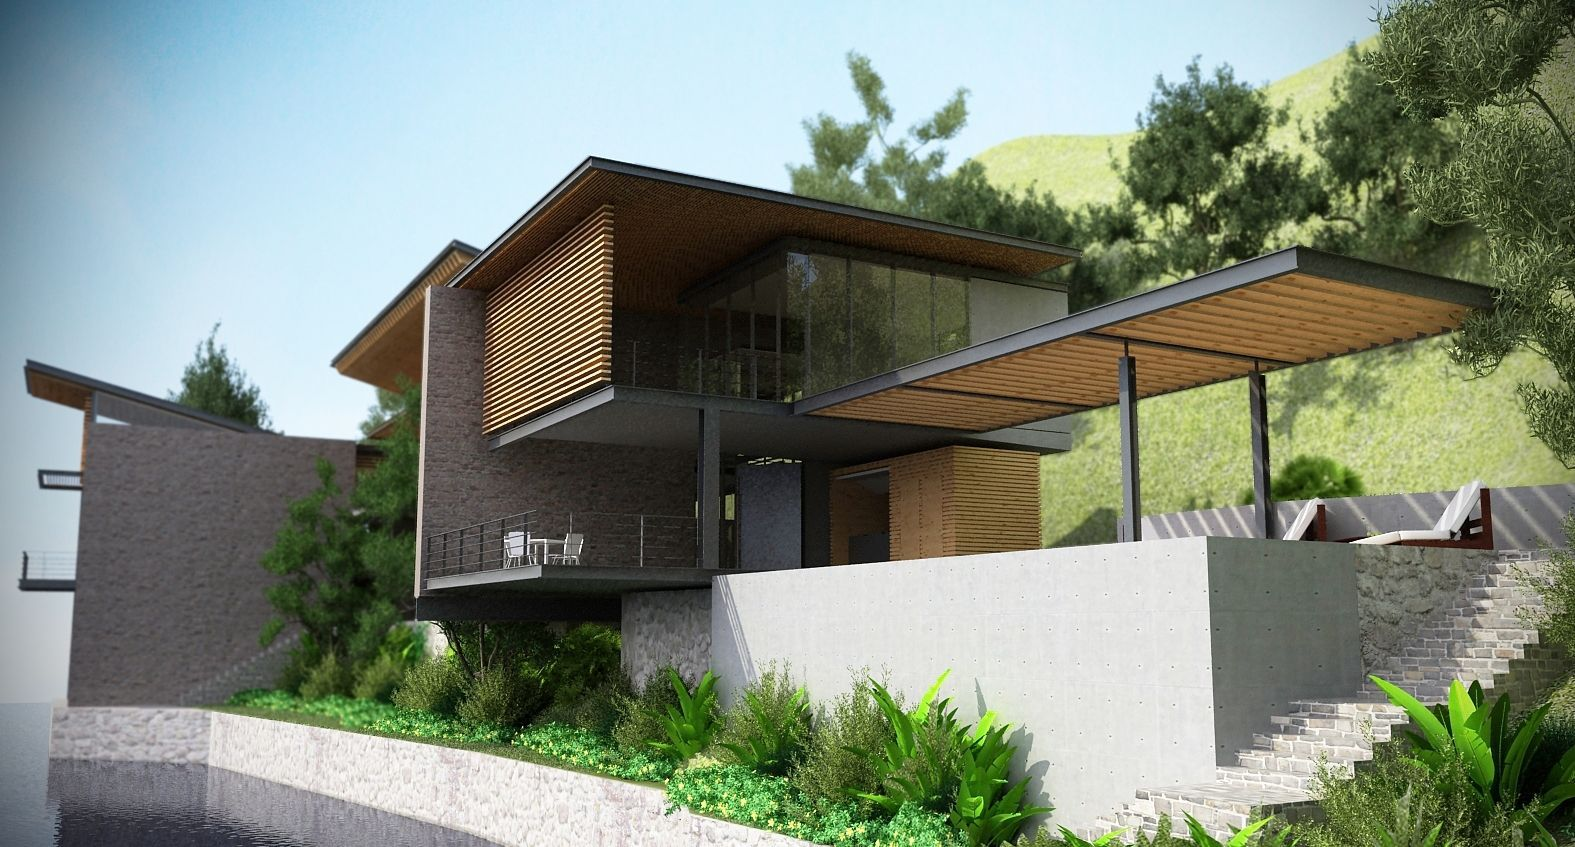 Pre presa lake house avp architecture interior design House architecture design online